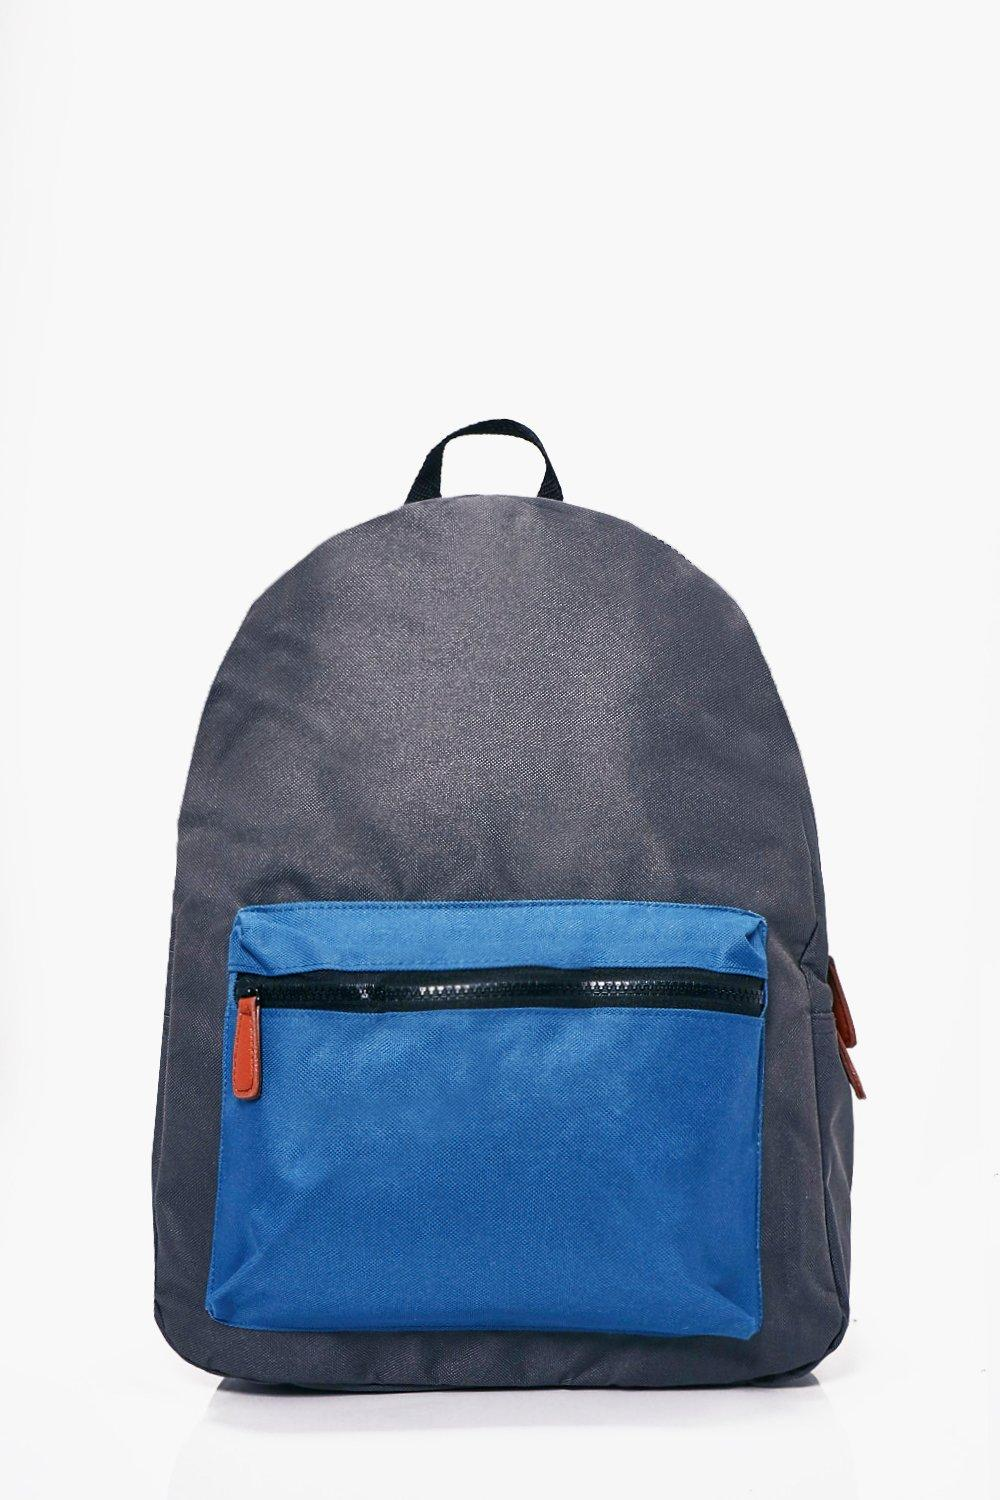 Pocket Backpack - grey - Contrast Pocket Backpack